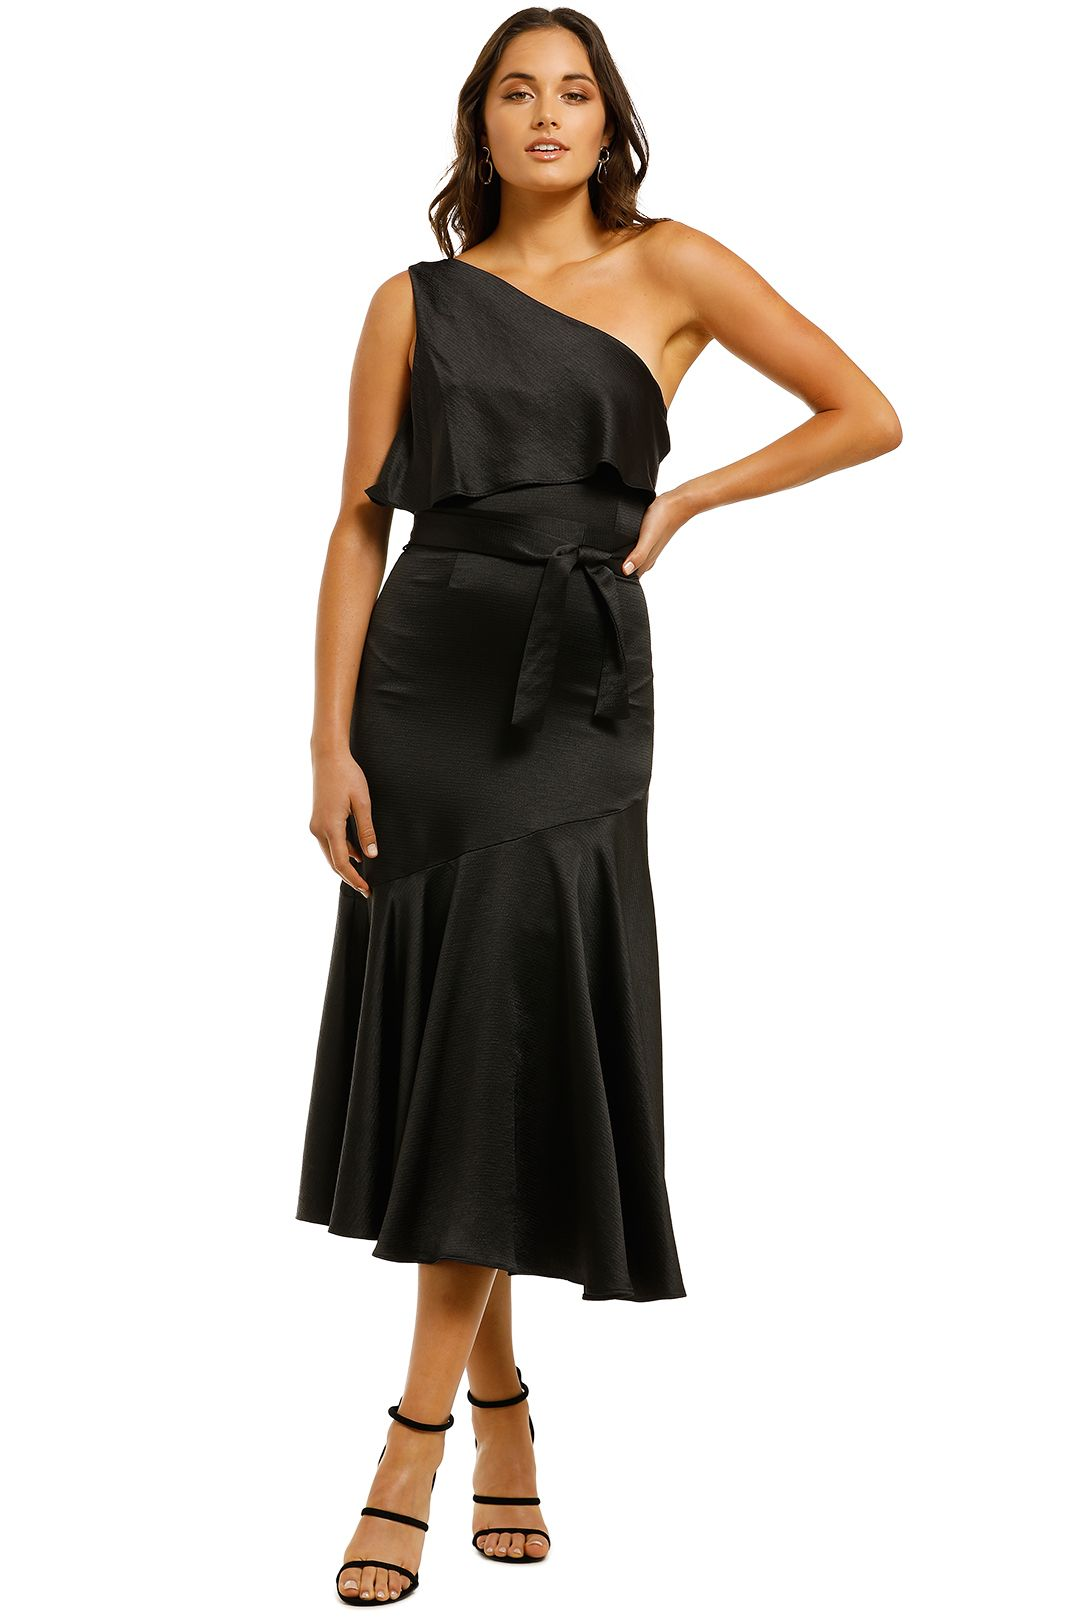 Pasduchas-Oasis-Asymmetry-Midi-Dress-Black-Front